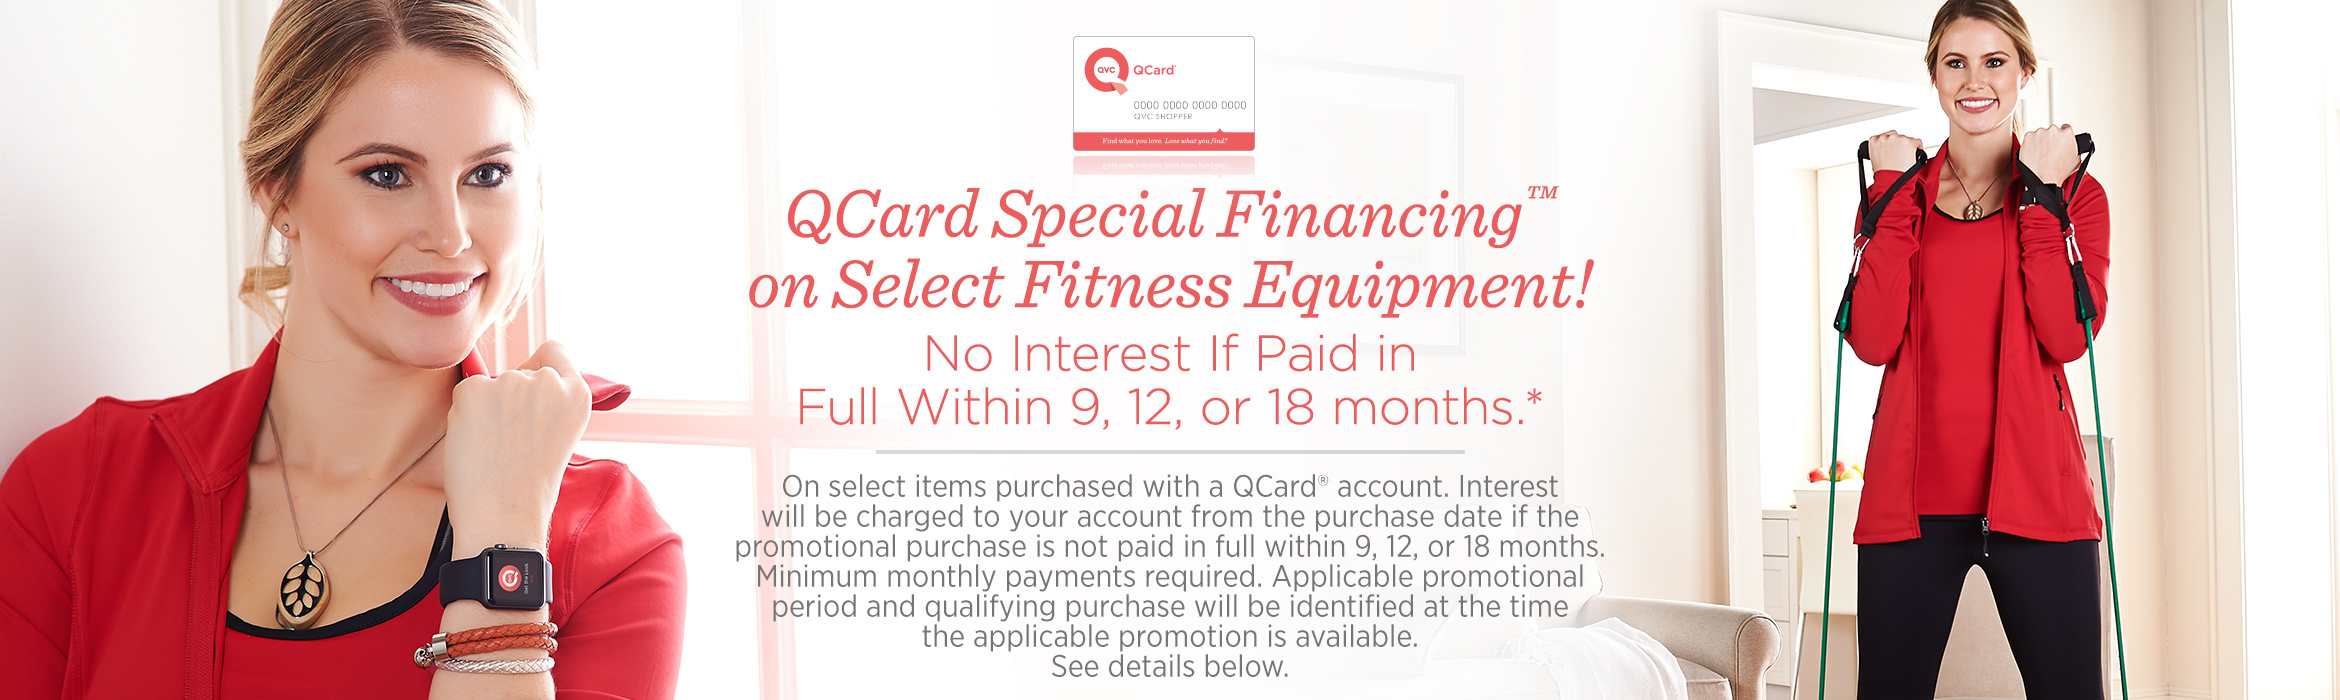 QCard Special Financing™ on Select Fitness Equipment!  No Interest If Paid in Full Within 9, 12, or 18 months.*  On select items purchased with a QCard® account. Interest will be charged to your account from the purchase date if the promotional purchase is not paid in full within 9, 12, or 18 months. Minimum monthly payments required. Applicable promotional period and qualifying purchase will be identified at the time the applicable promotion is available. See details below.